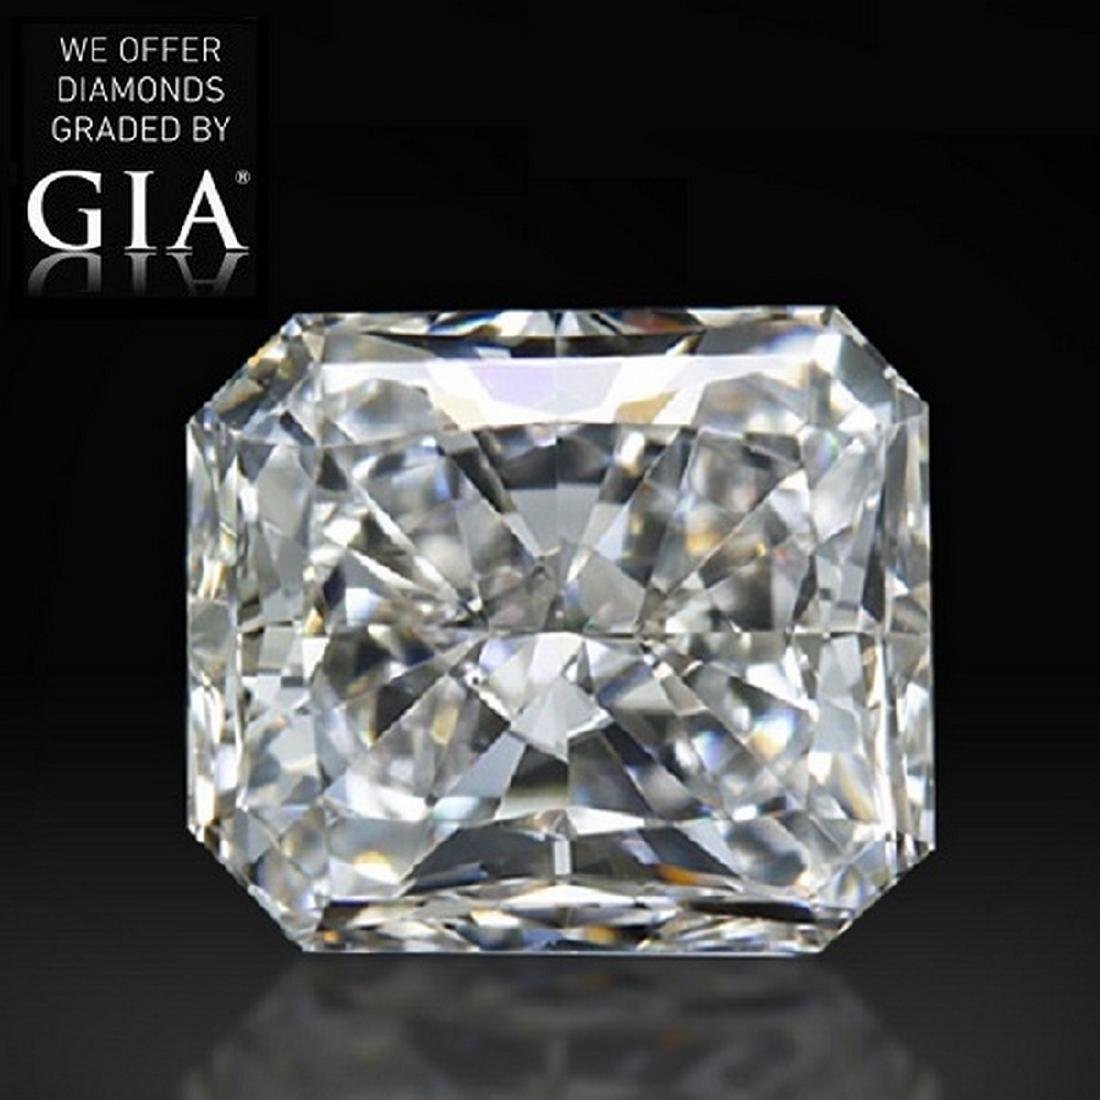 3.02 ct, Color E/VS2 , Radiant cut Diamond